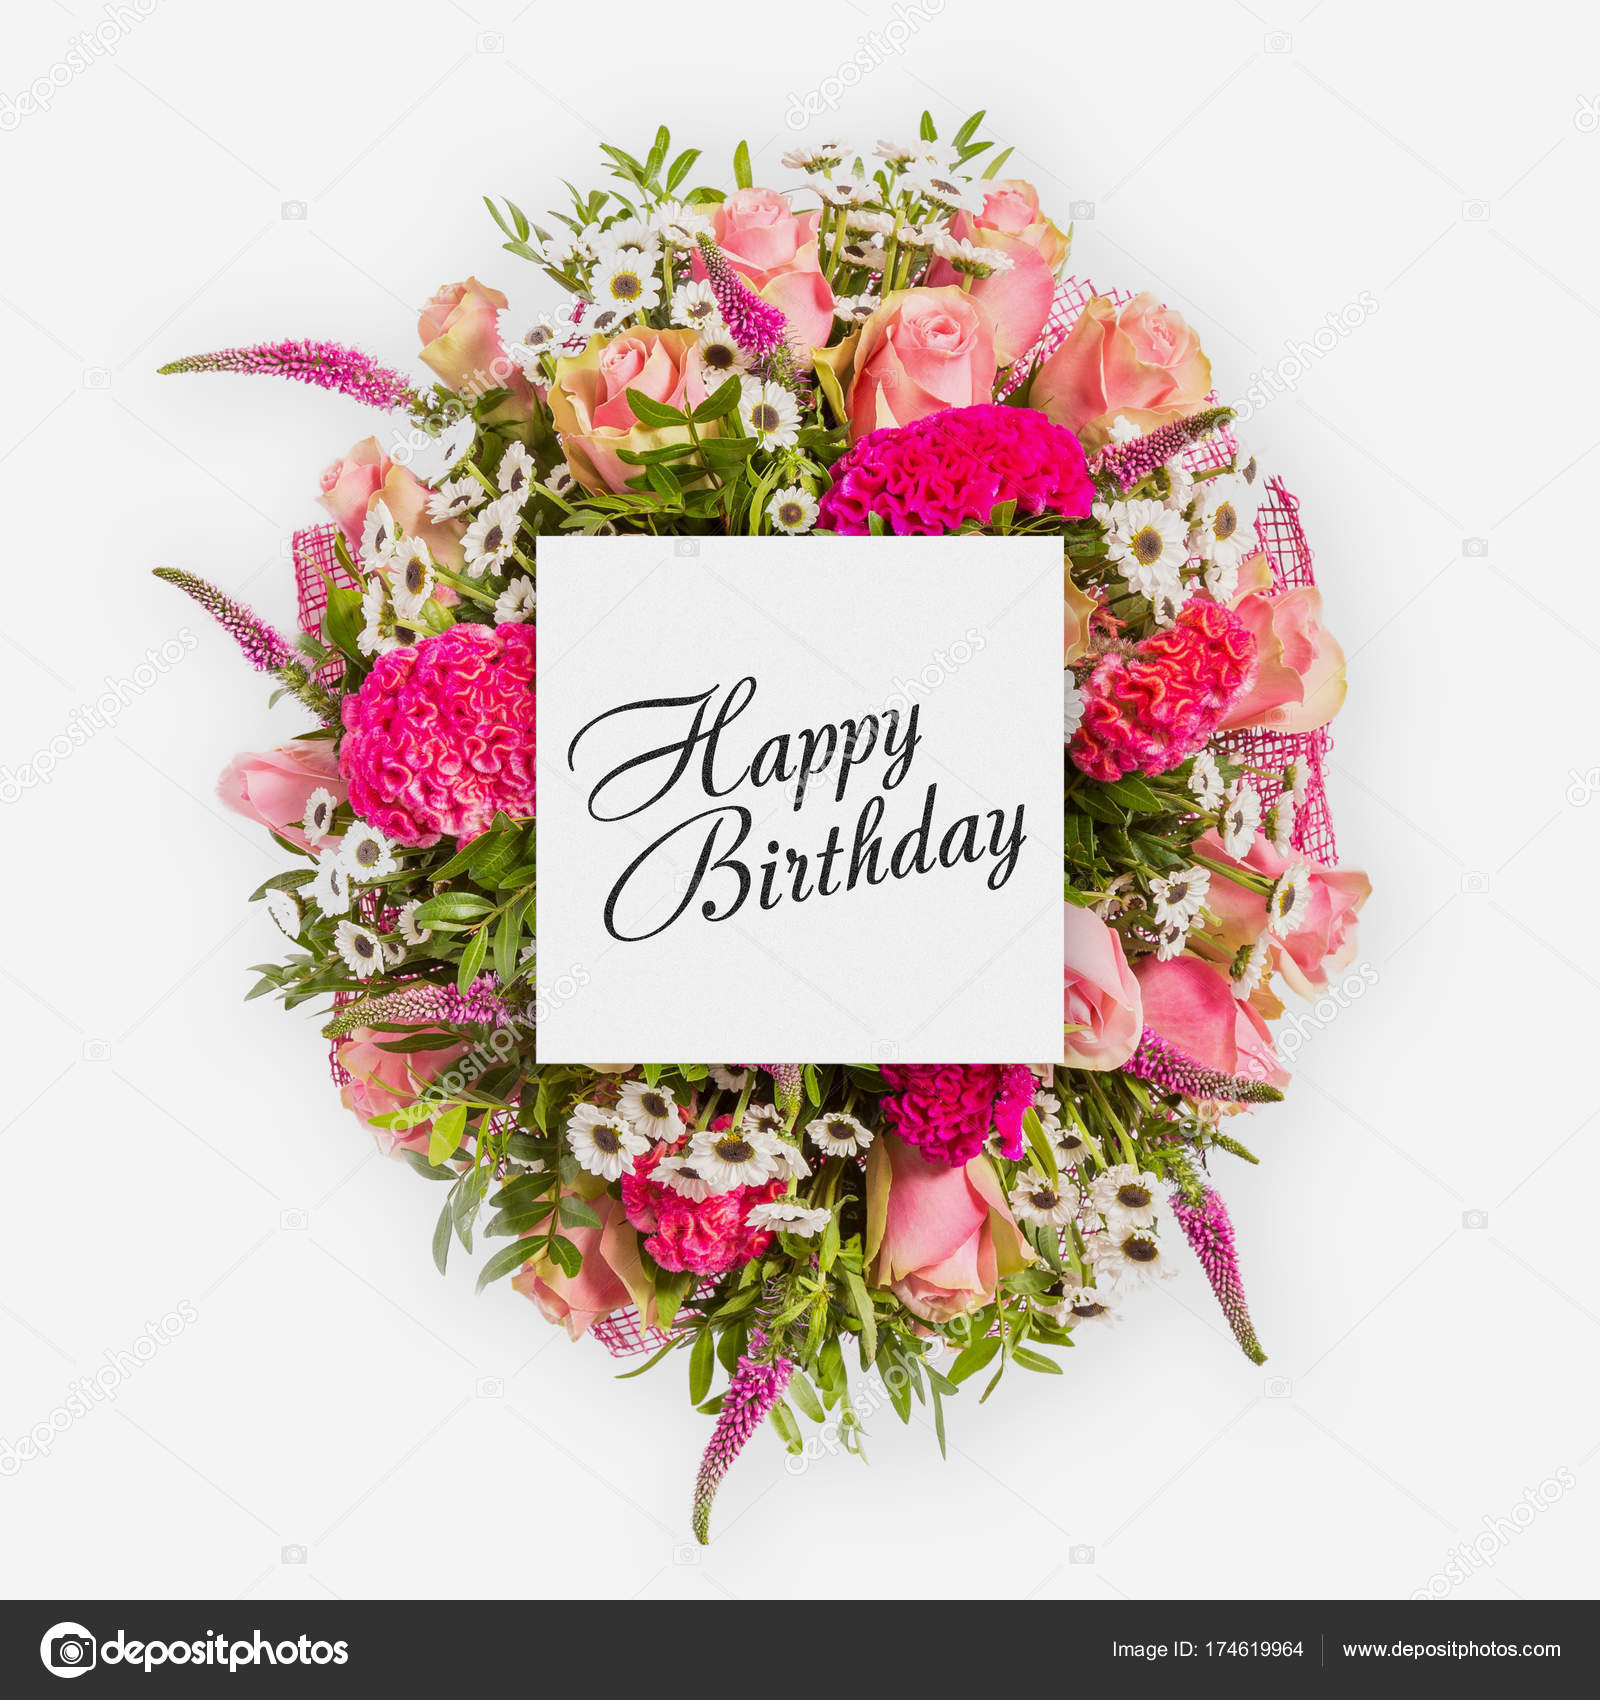 Happy birthday card with flowers flat lay stock photo gilmanshin happy birthday card with flowers flat lay stock photo izmirmasajfo